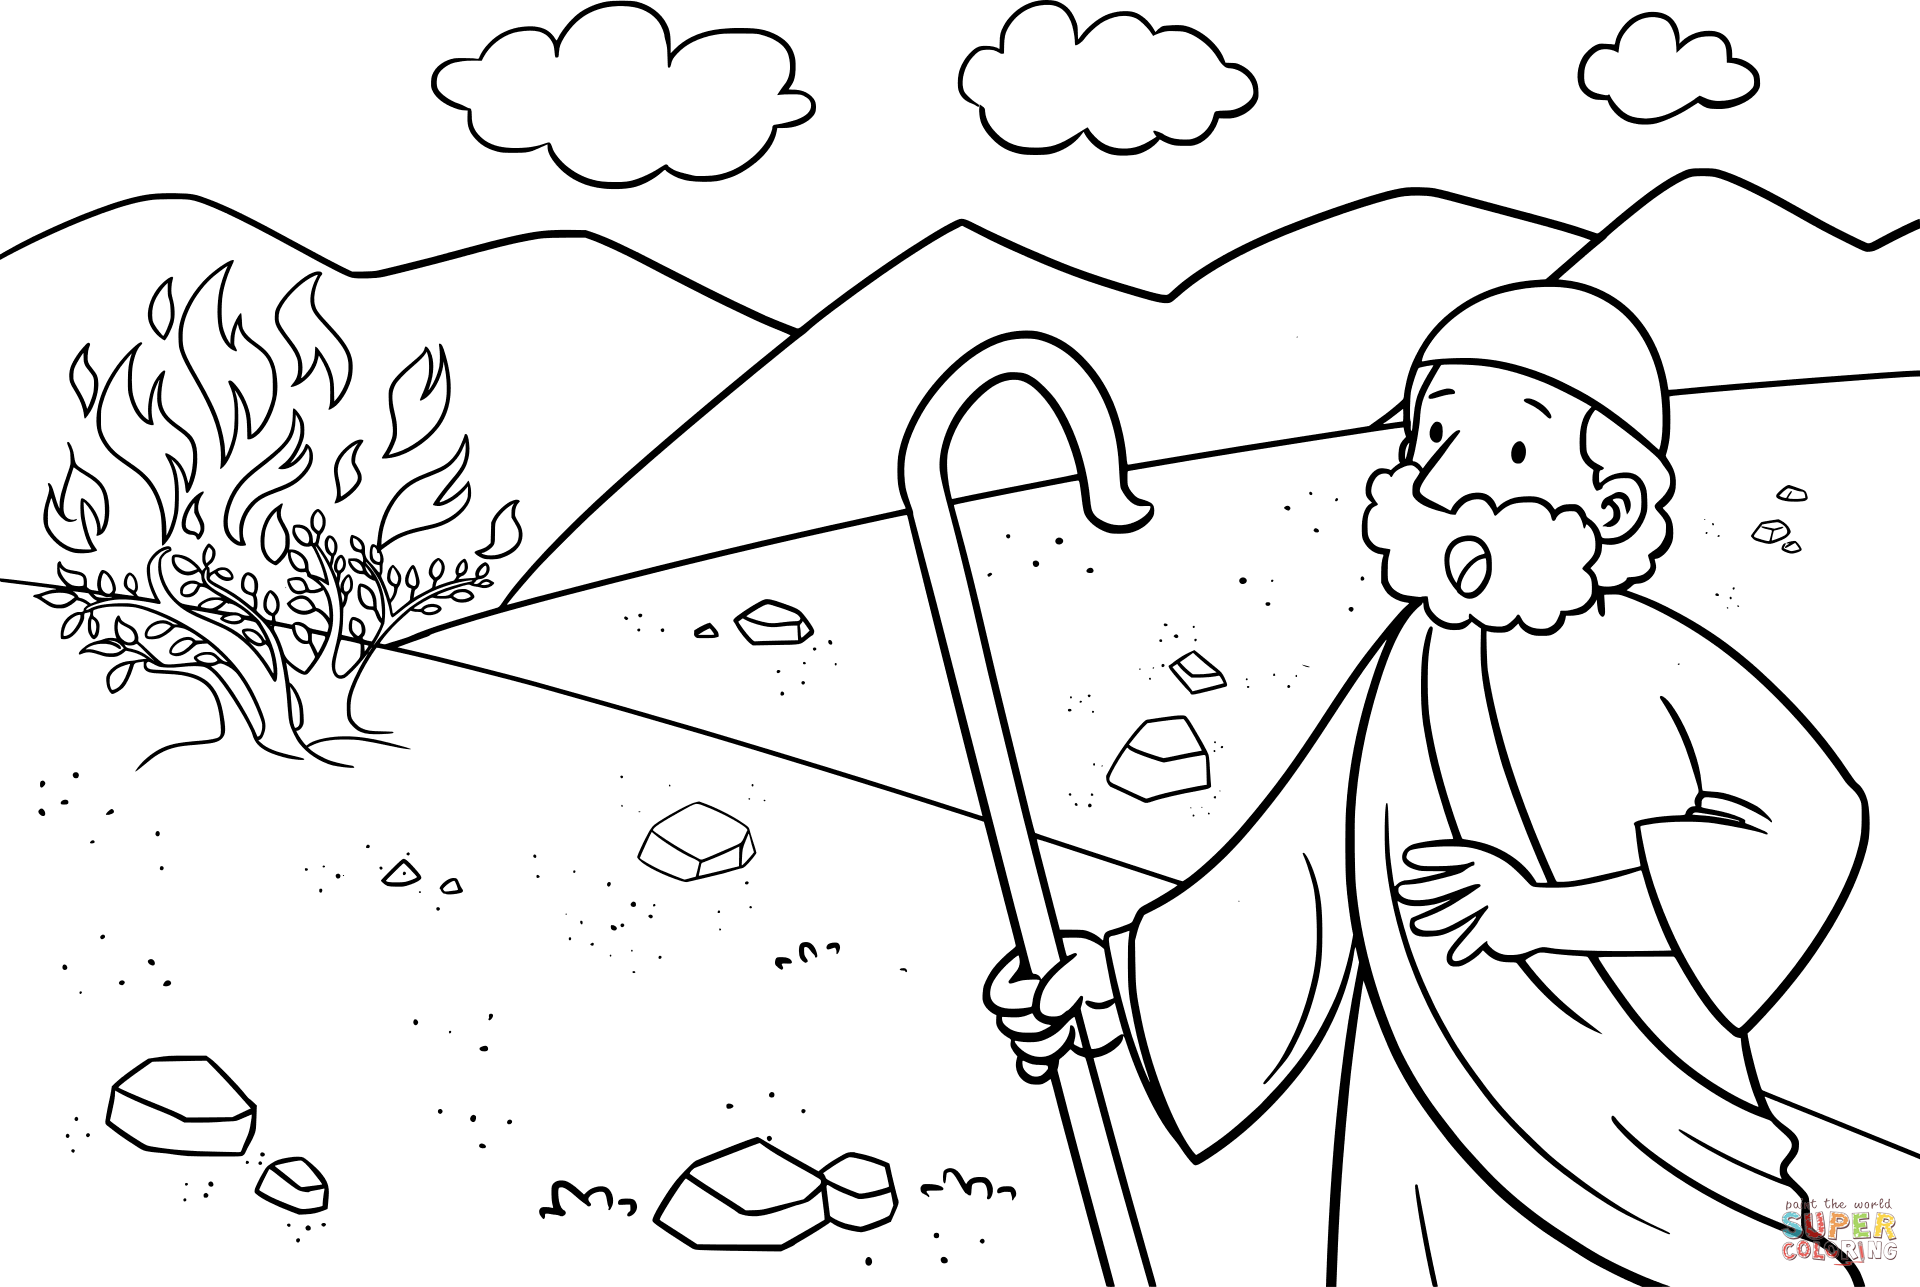 Click the moses the burning bush coloring pages to view printable version or color it online compatible with ipad and android tablets